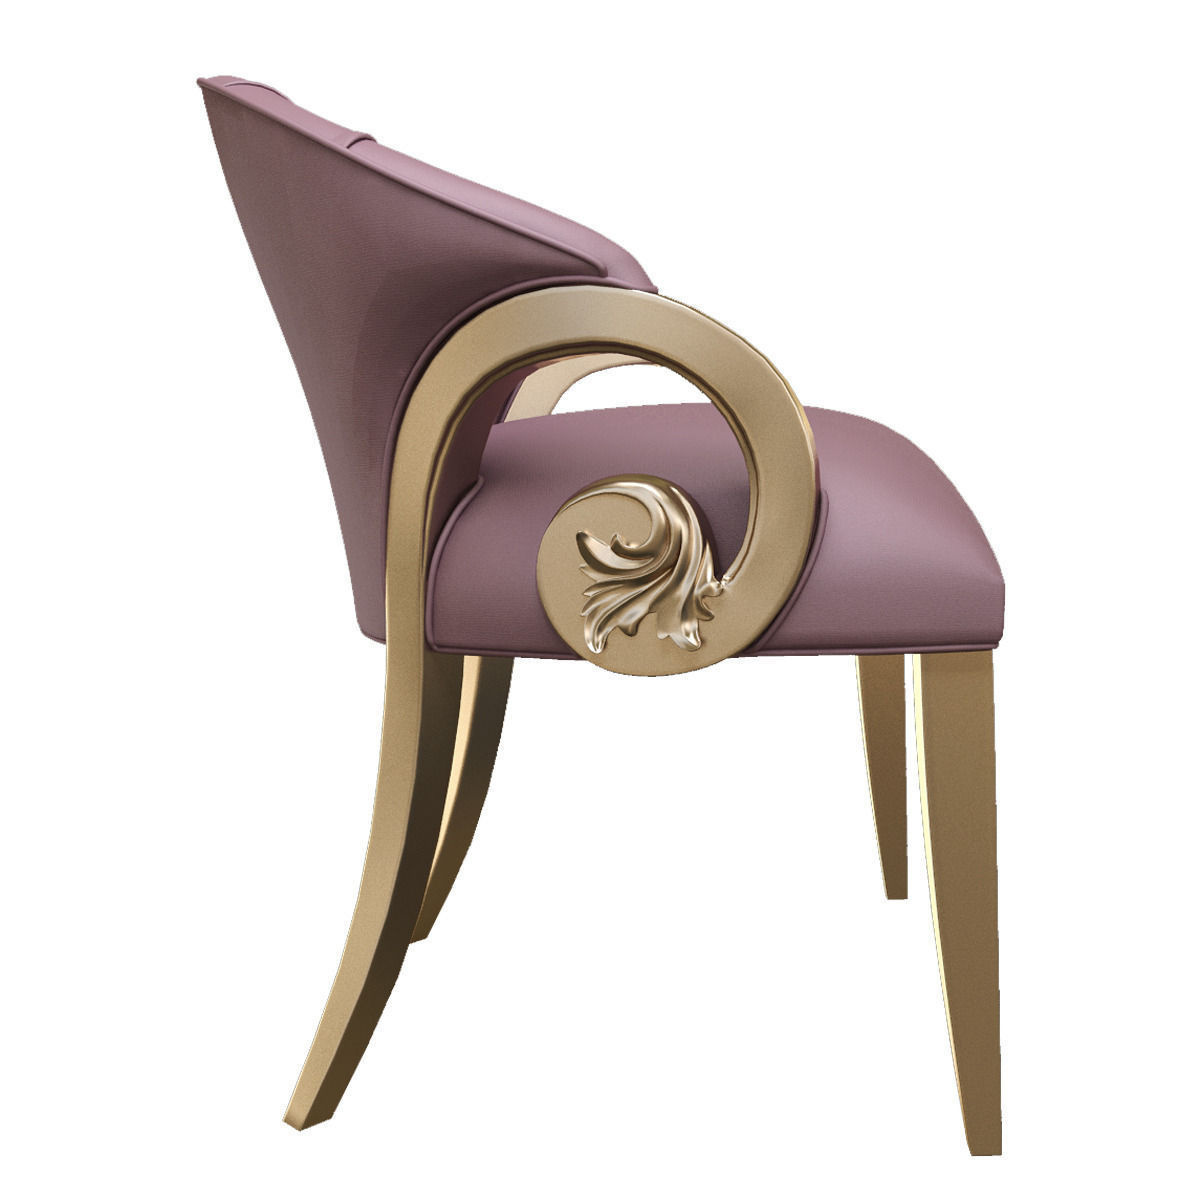 christopher guy furniture prices. interesting guy christopher guy boutique chair 3d model max obj 3ds fbx mtl 1  and christopher guy furniture prices